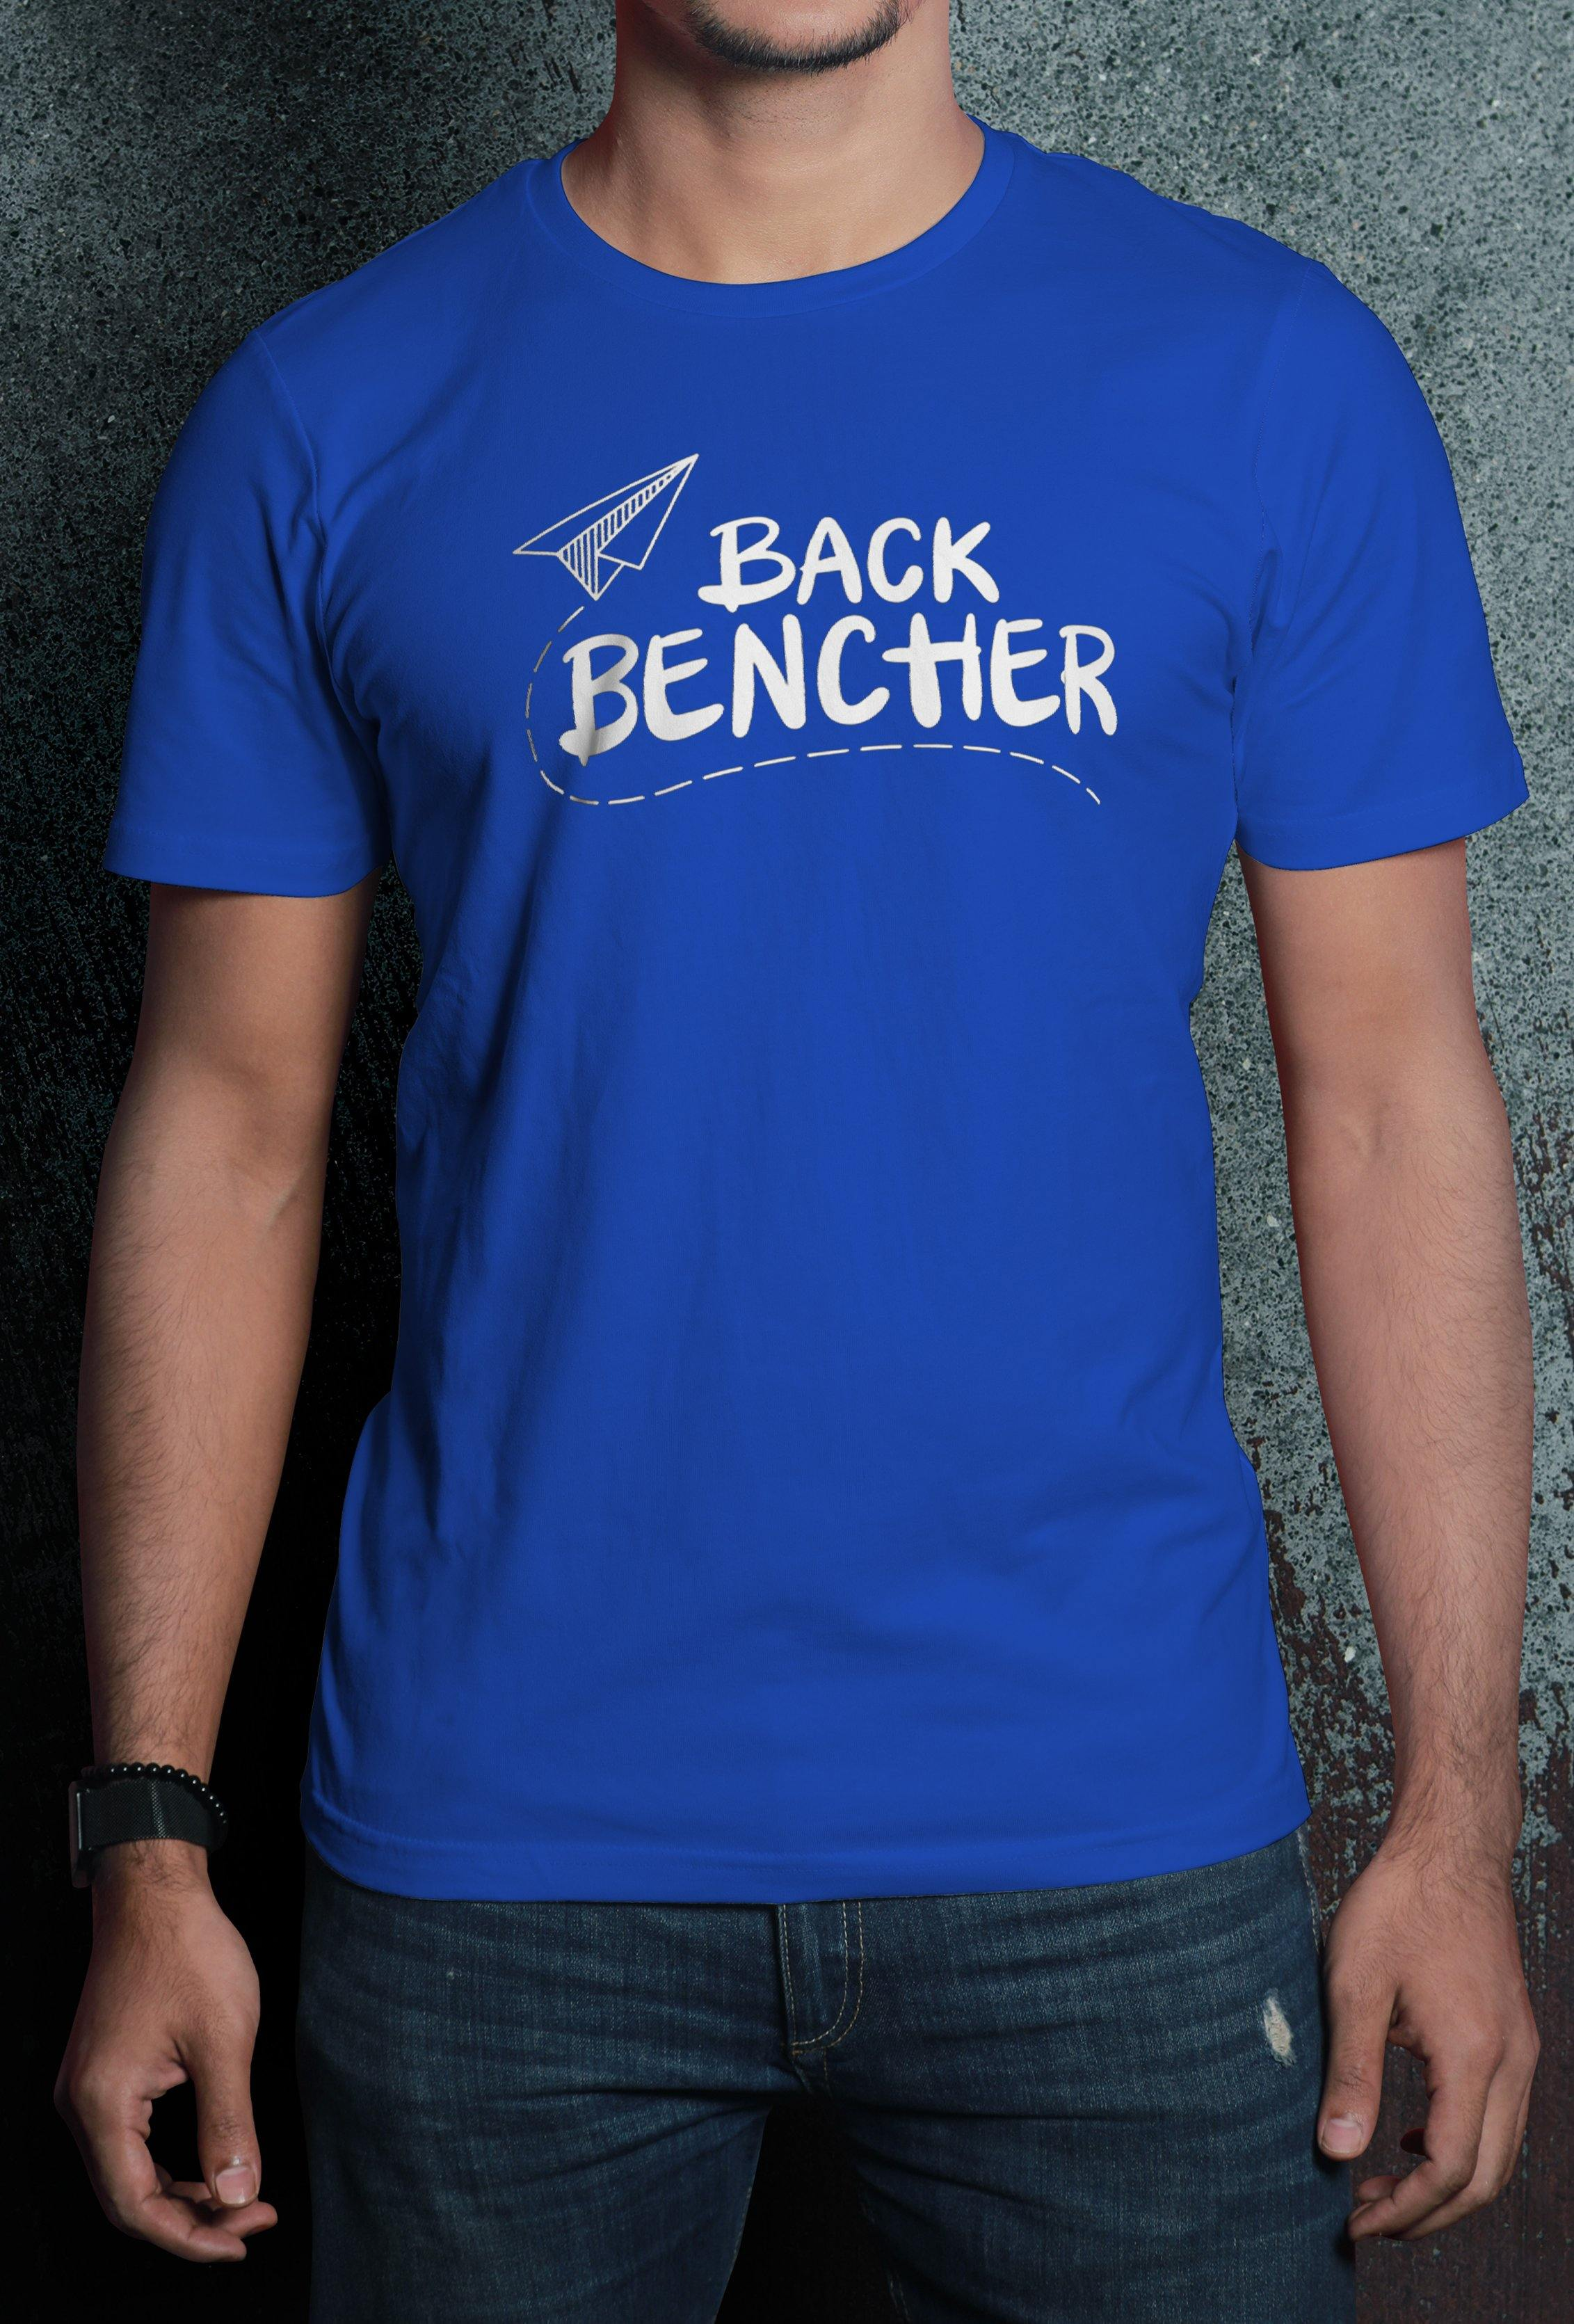 Back Bencher Print Half Sleeve Premium Quality Cotton T-Shirt - thewardrobe-store-in